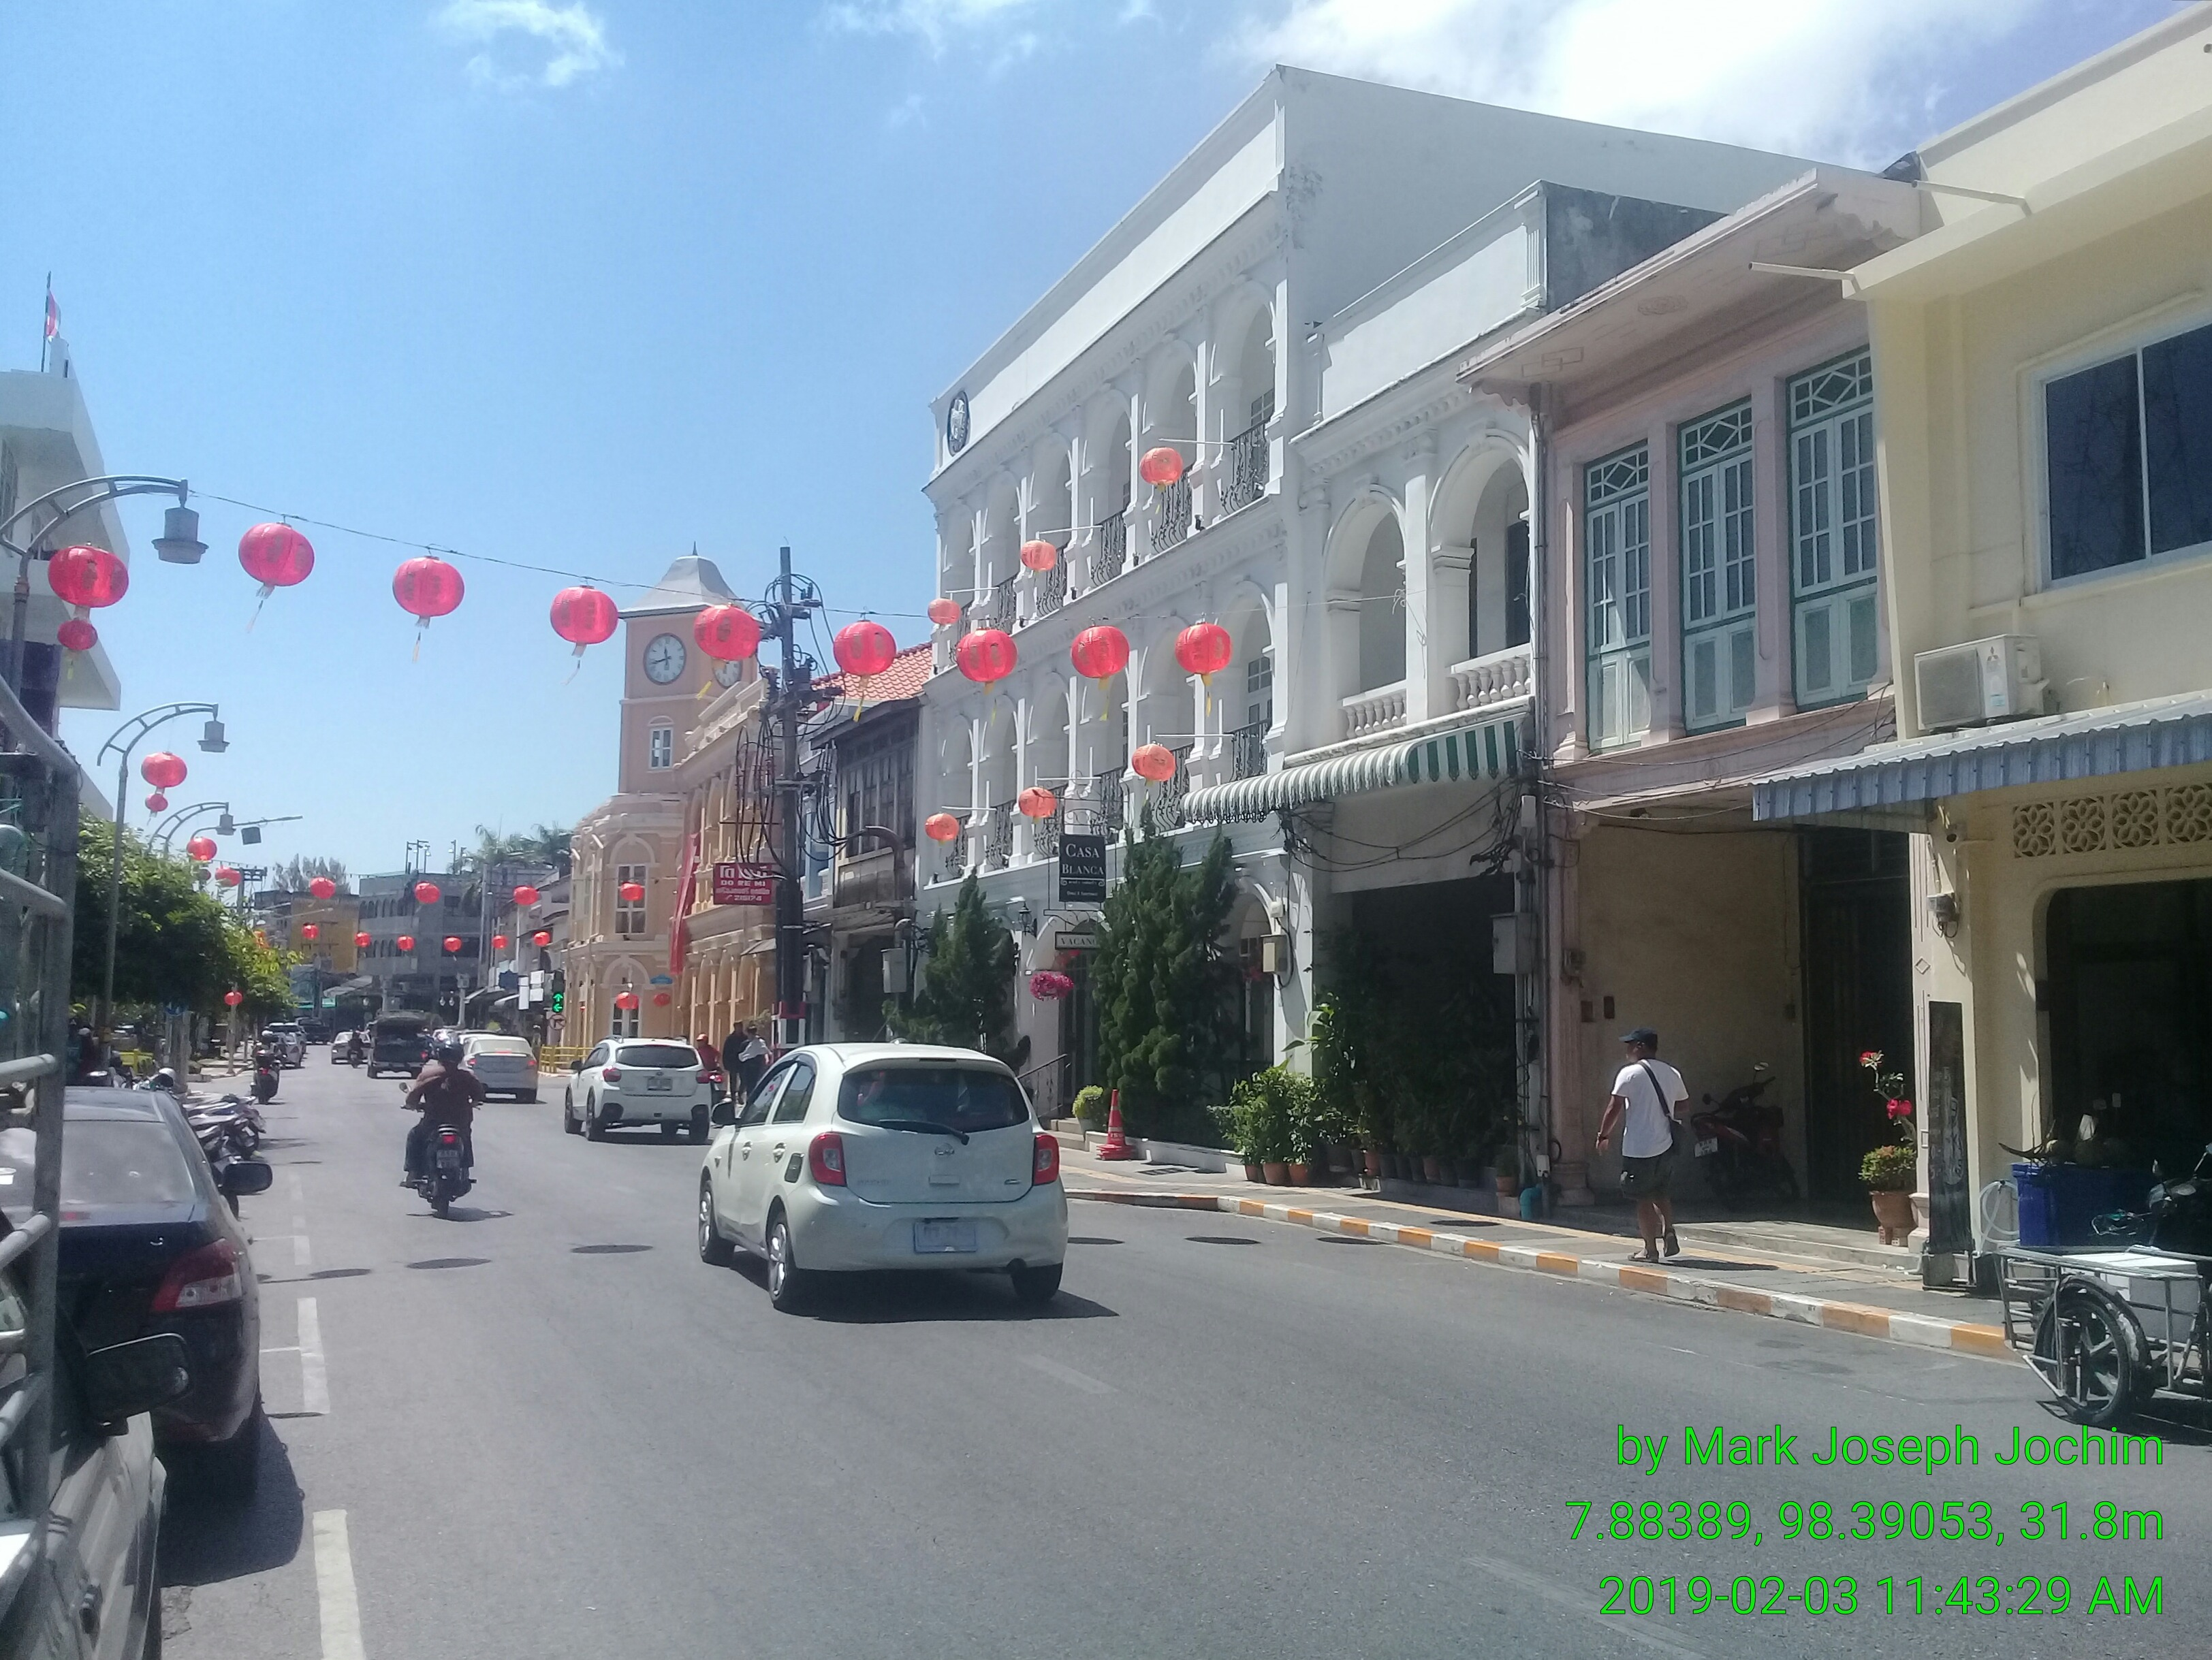 Phuket Road in Old Phuket Town on a Sunday morning in early February.